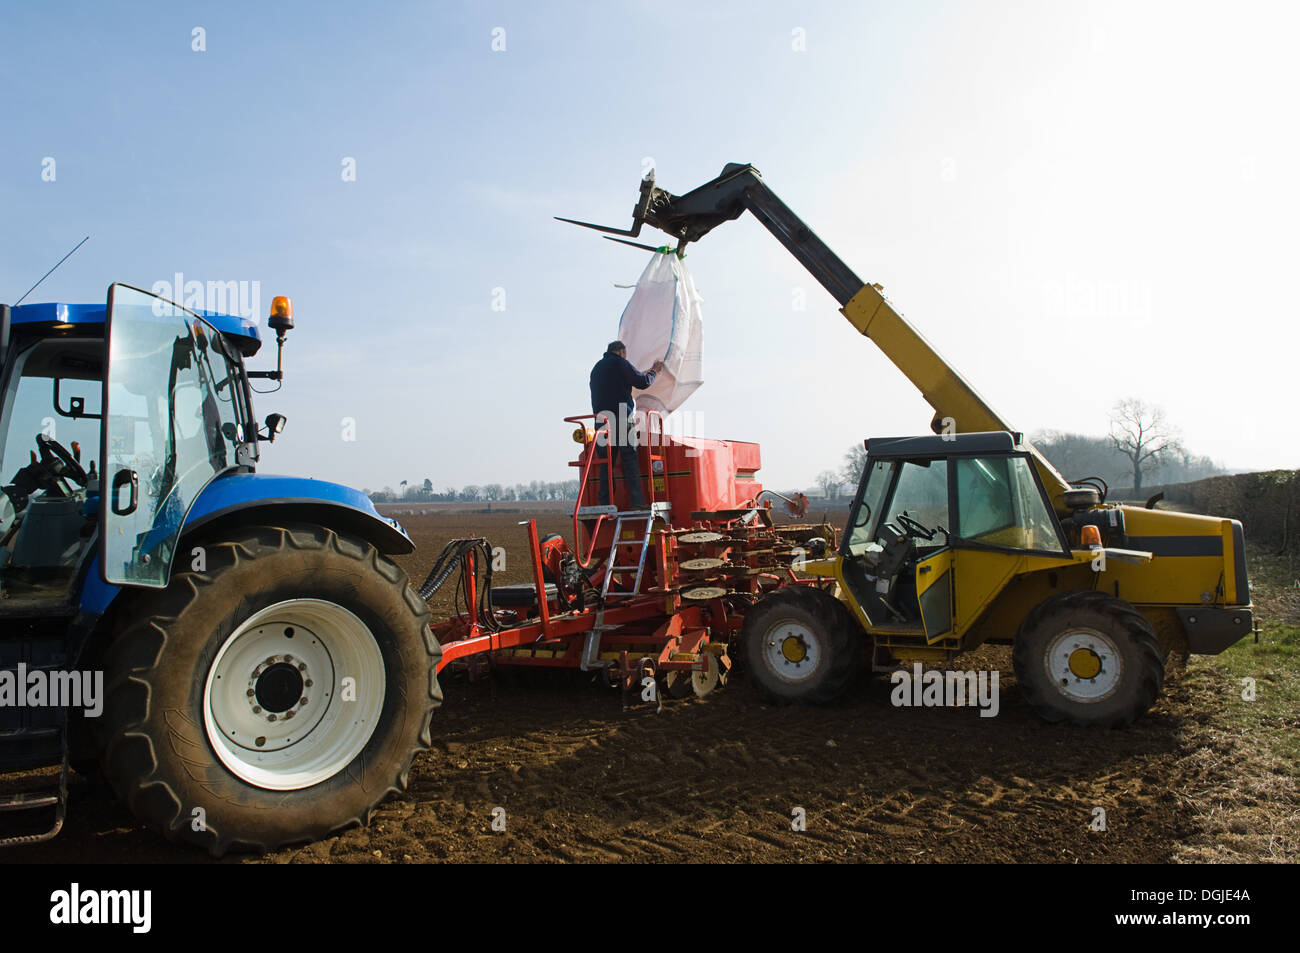 Farmer filling machinery with seed for planting - Stock Image